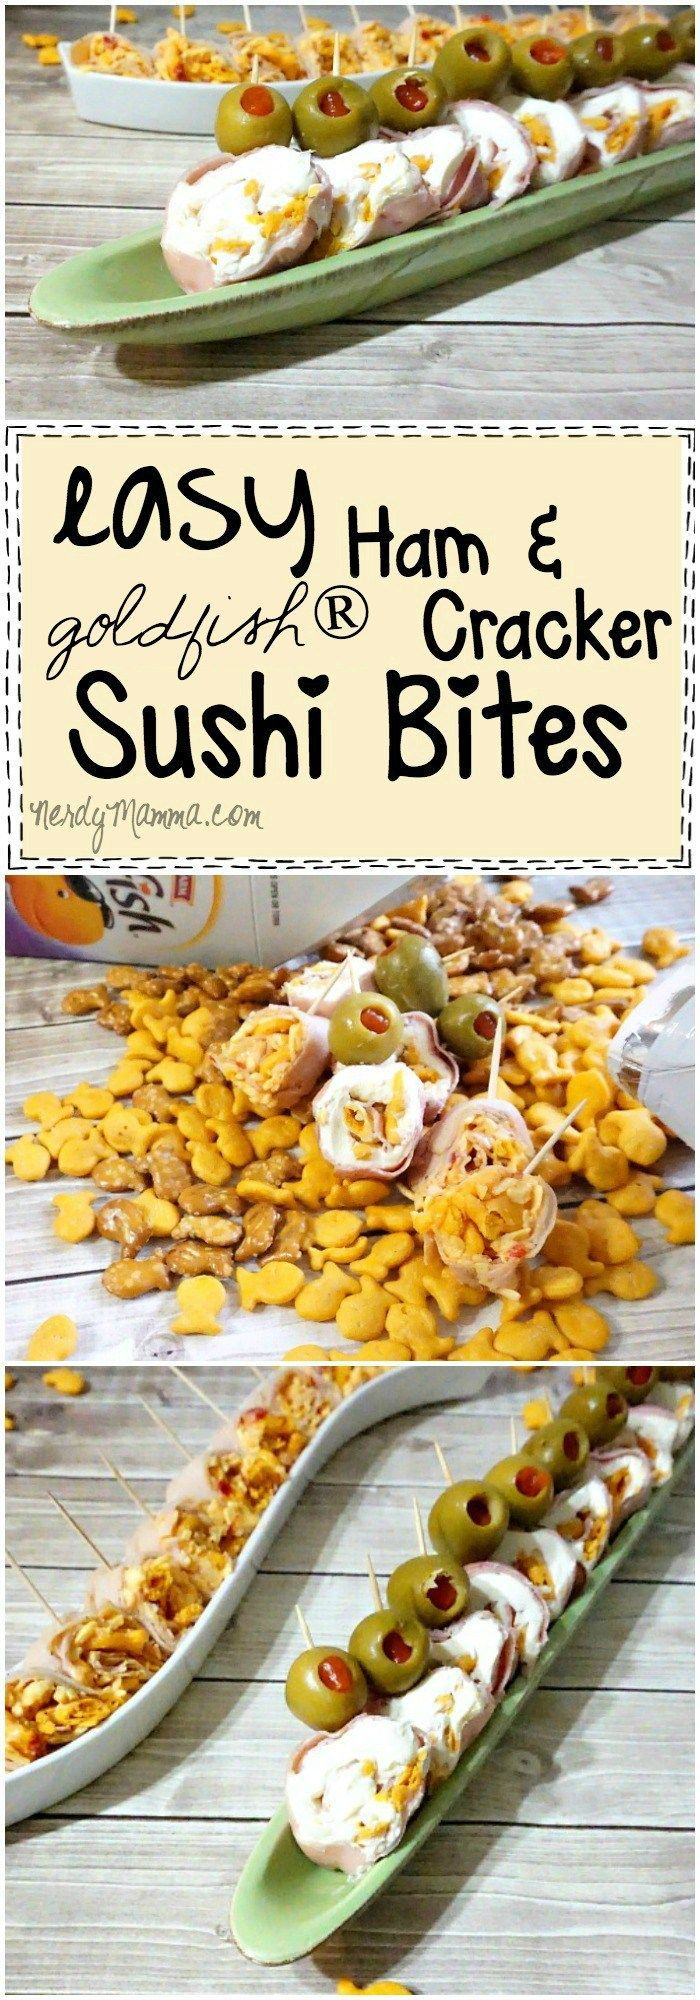 I love this recipe for Easy Ham and Goldfish® Cracker Sushi Bites...so cute! And the kids will just love 'em. I know I do. AD #GoldfishMix #Walmart #cbias